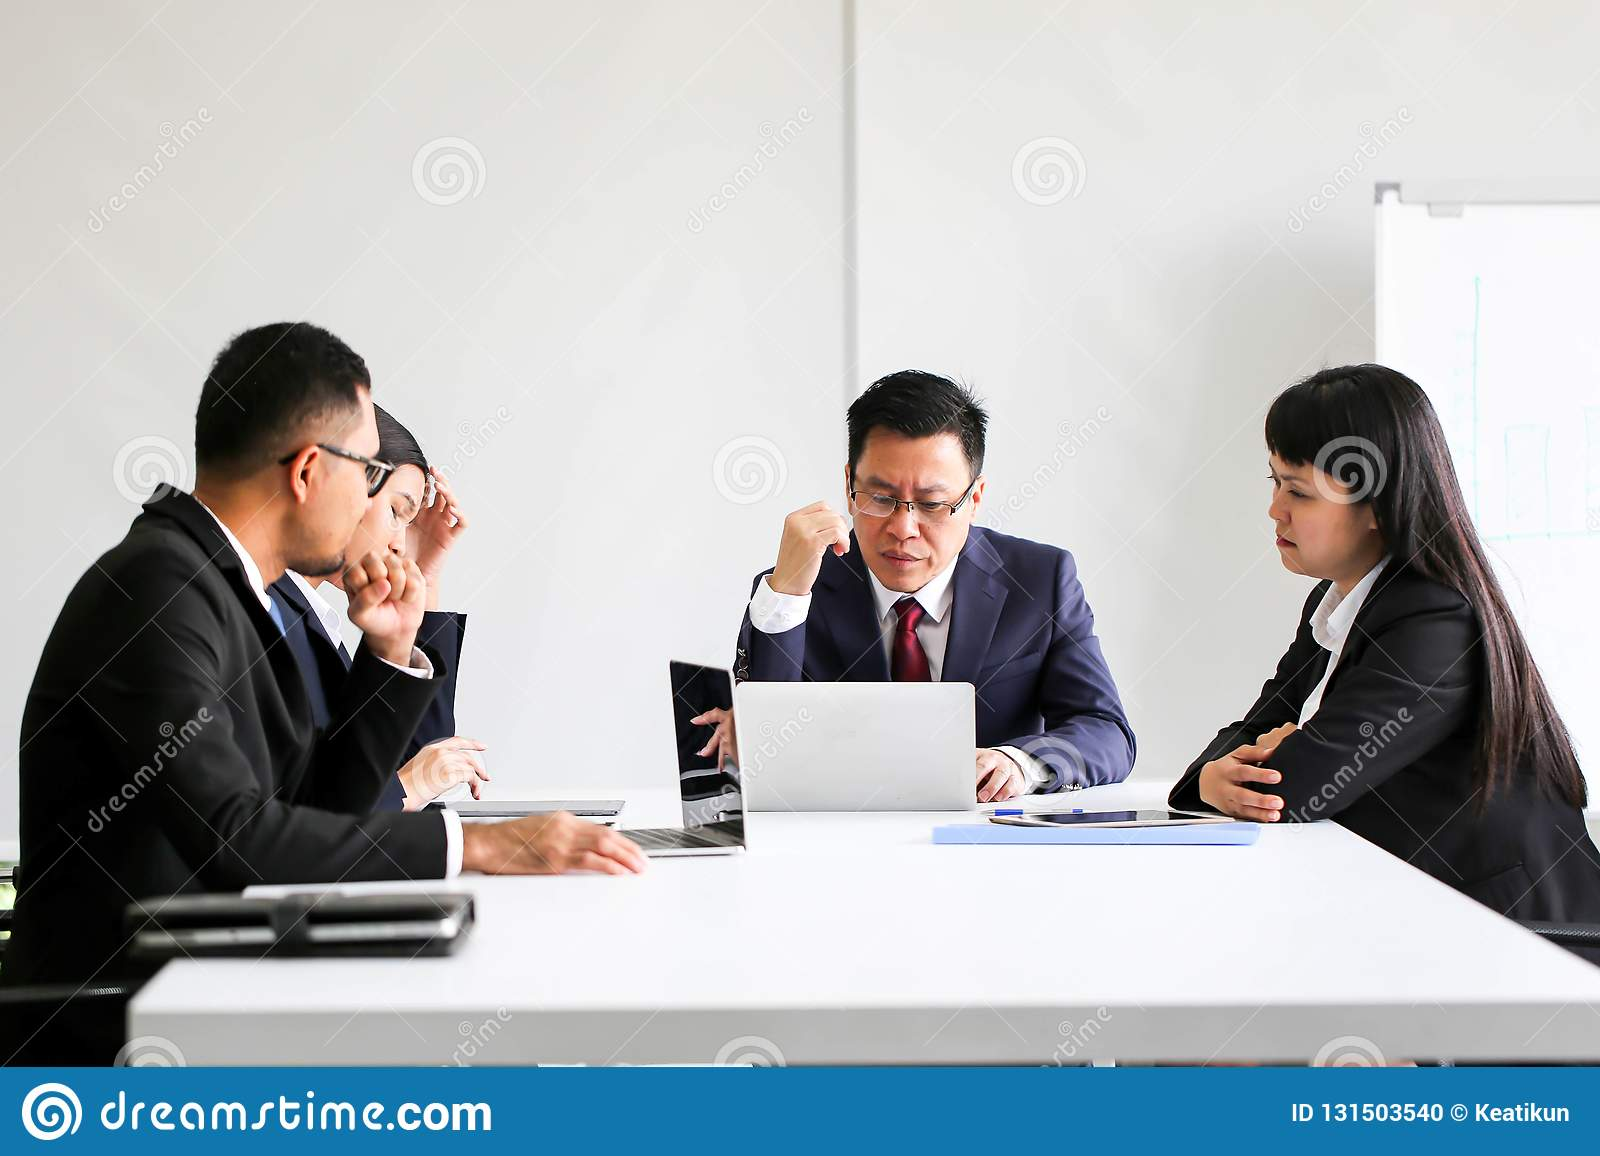 Business People Meeting Communication Discussion Working Office ,Meeting Corporate Success Brainstorming Teamwork Concept